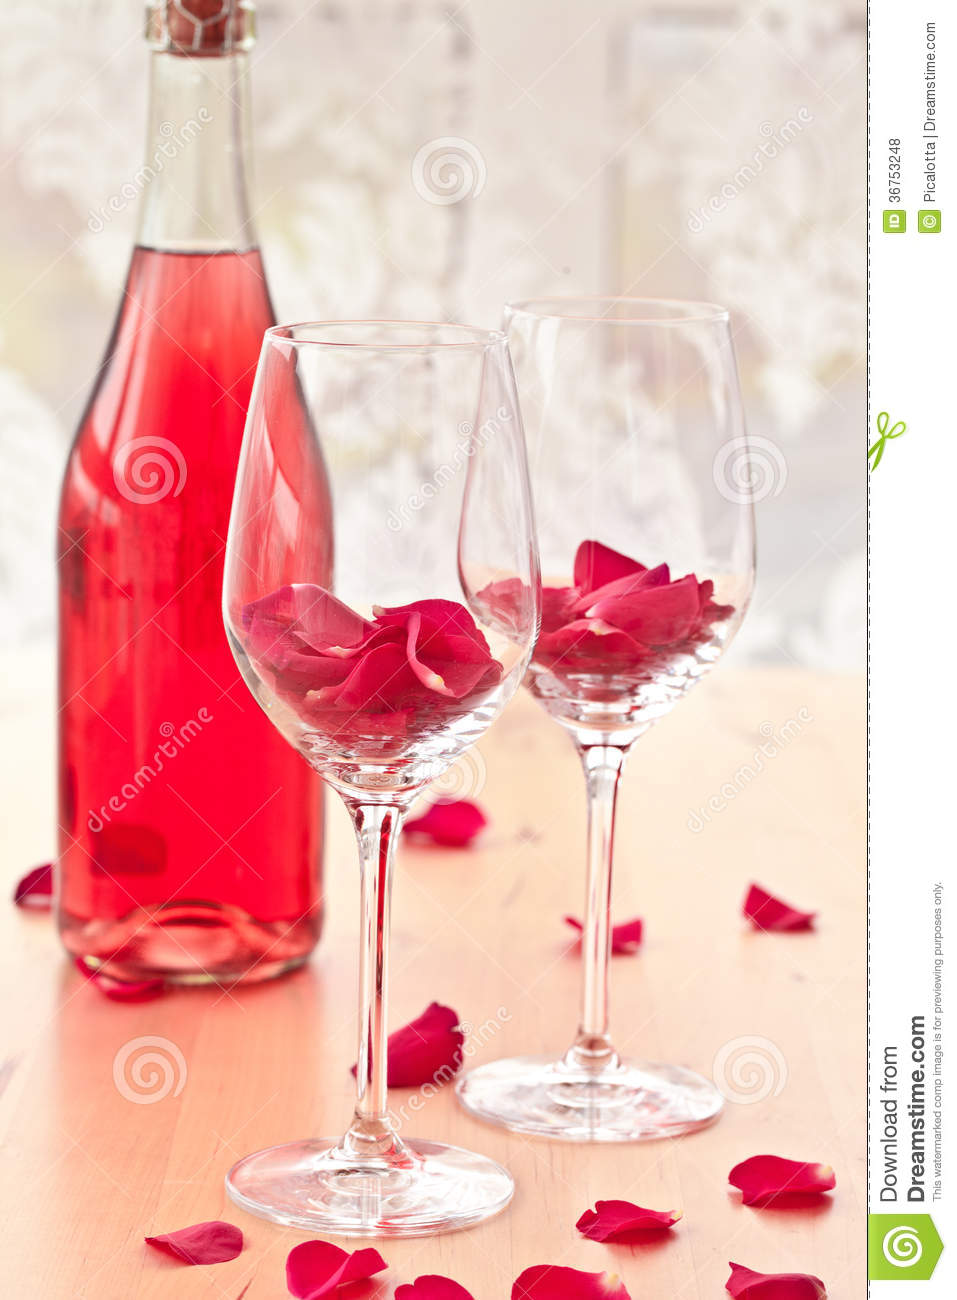 Cocktail with rose petals royalty free stock photos for Cocktail rose